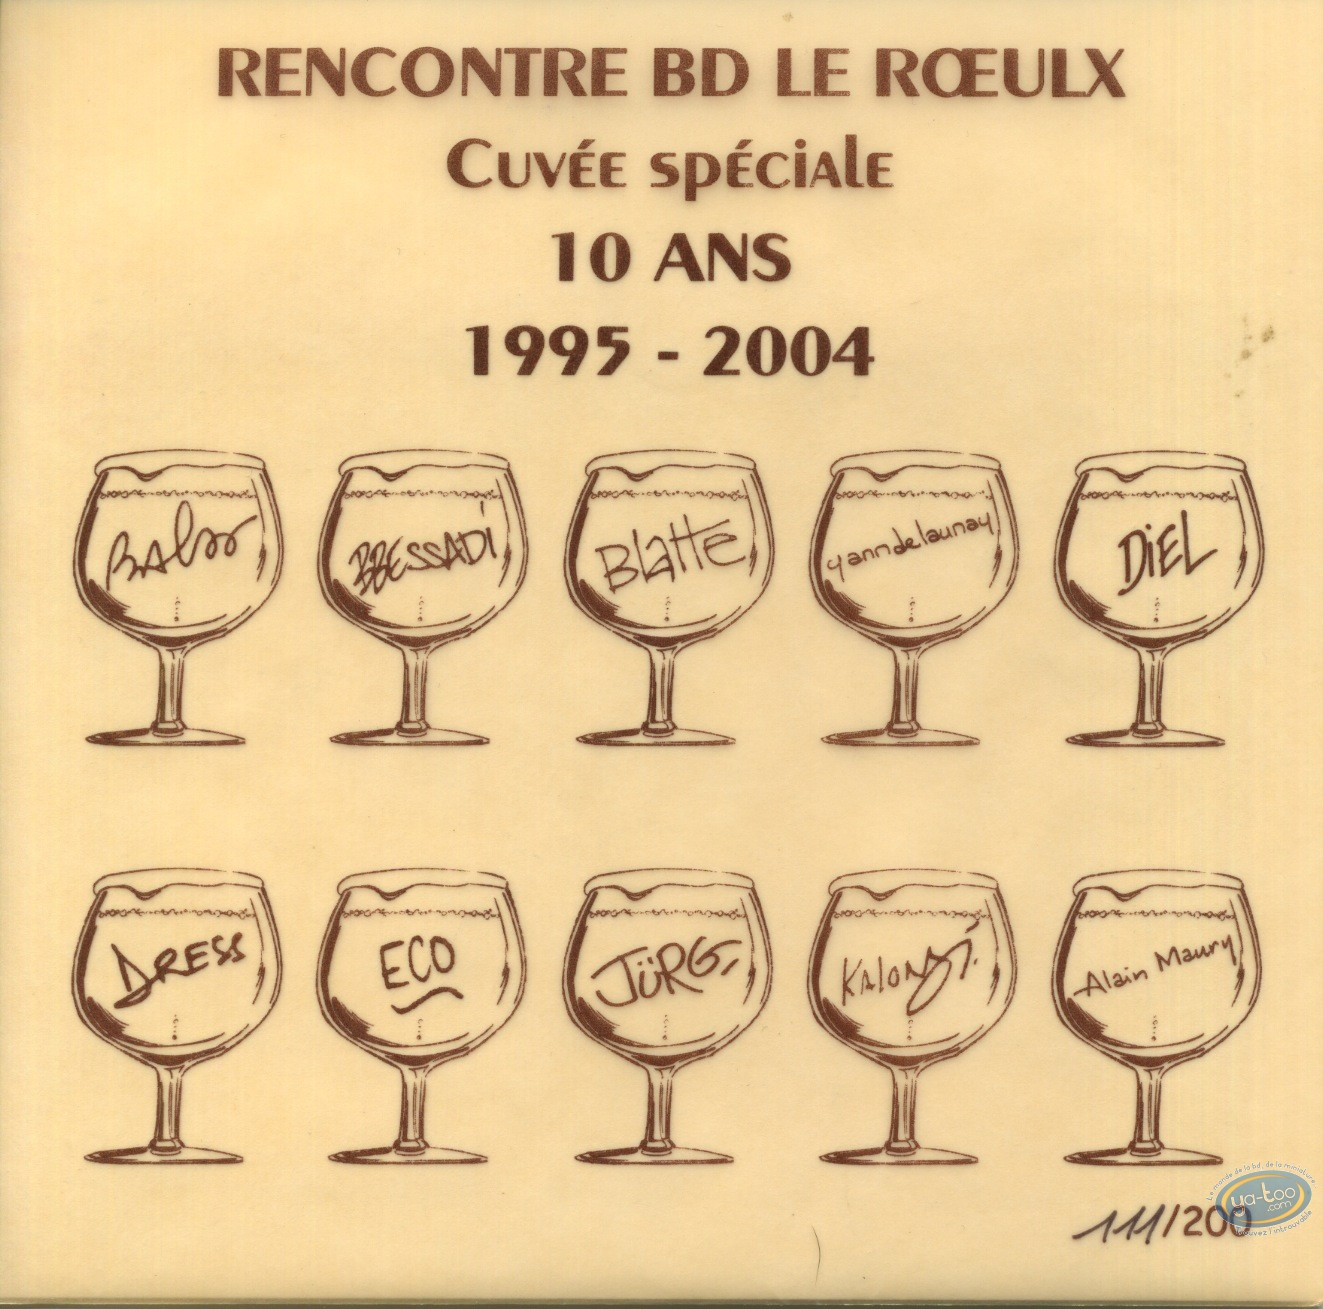 Wine Label, Cuvee speciale 10 years 1995-2004